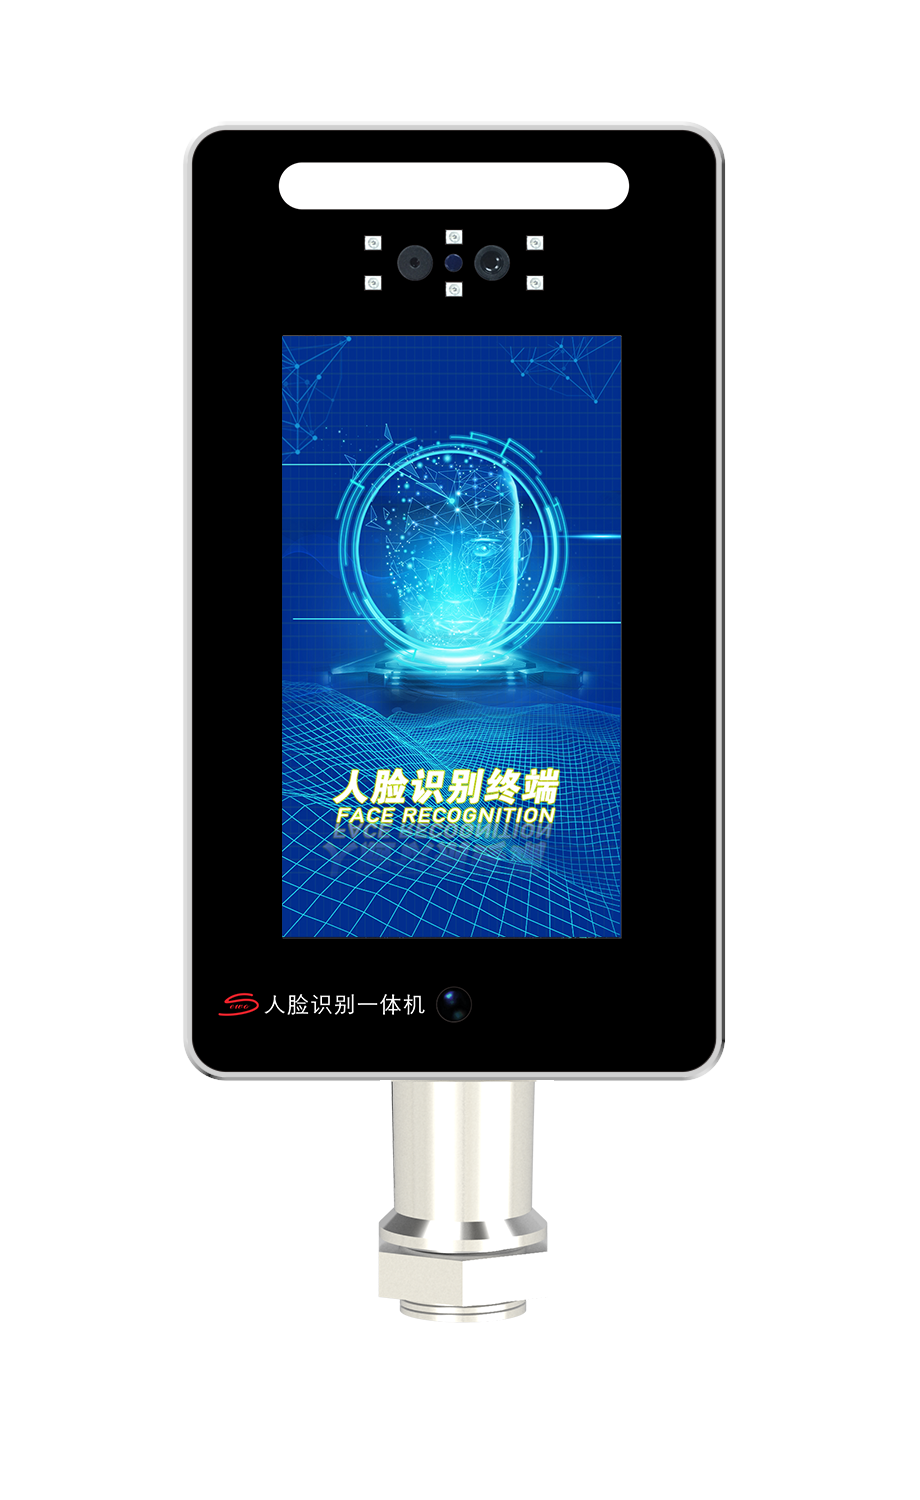 7 inch flat face recognition all-in-one machine